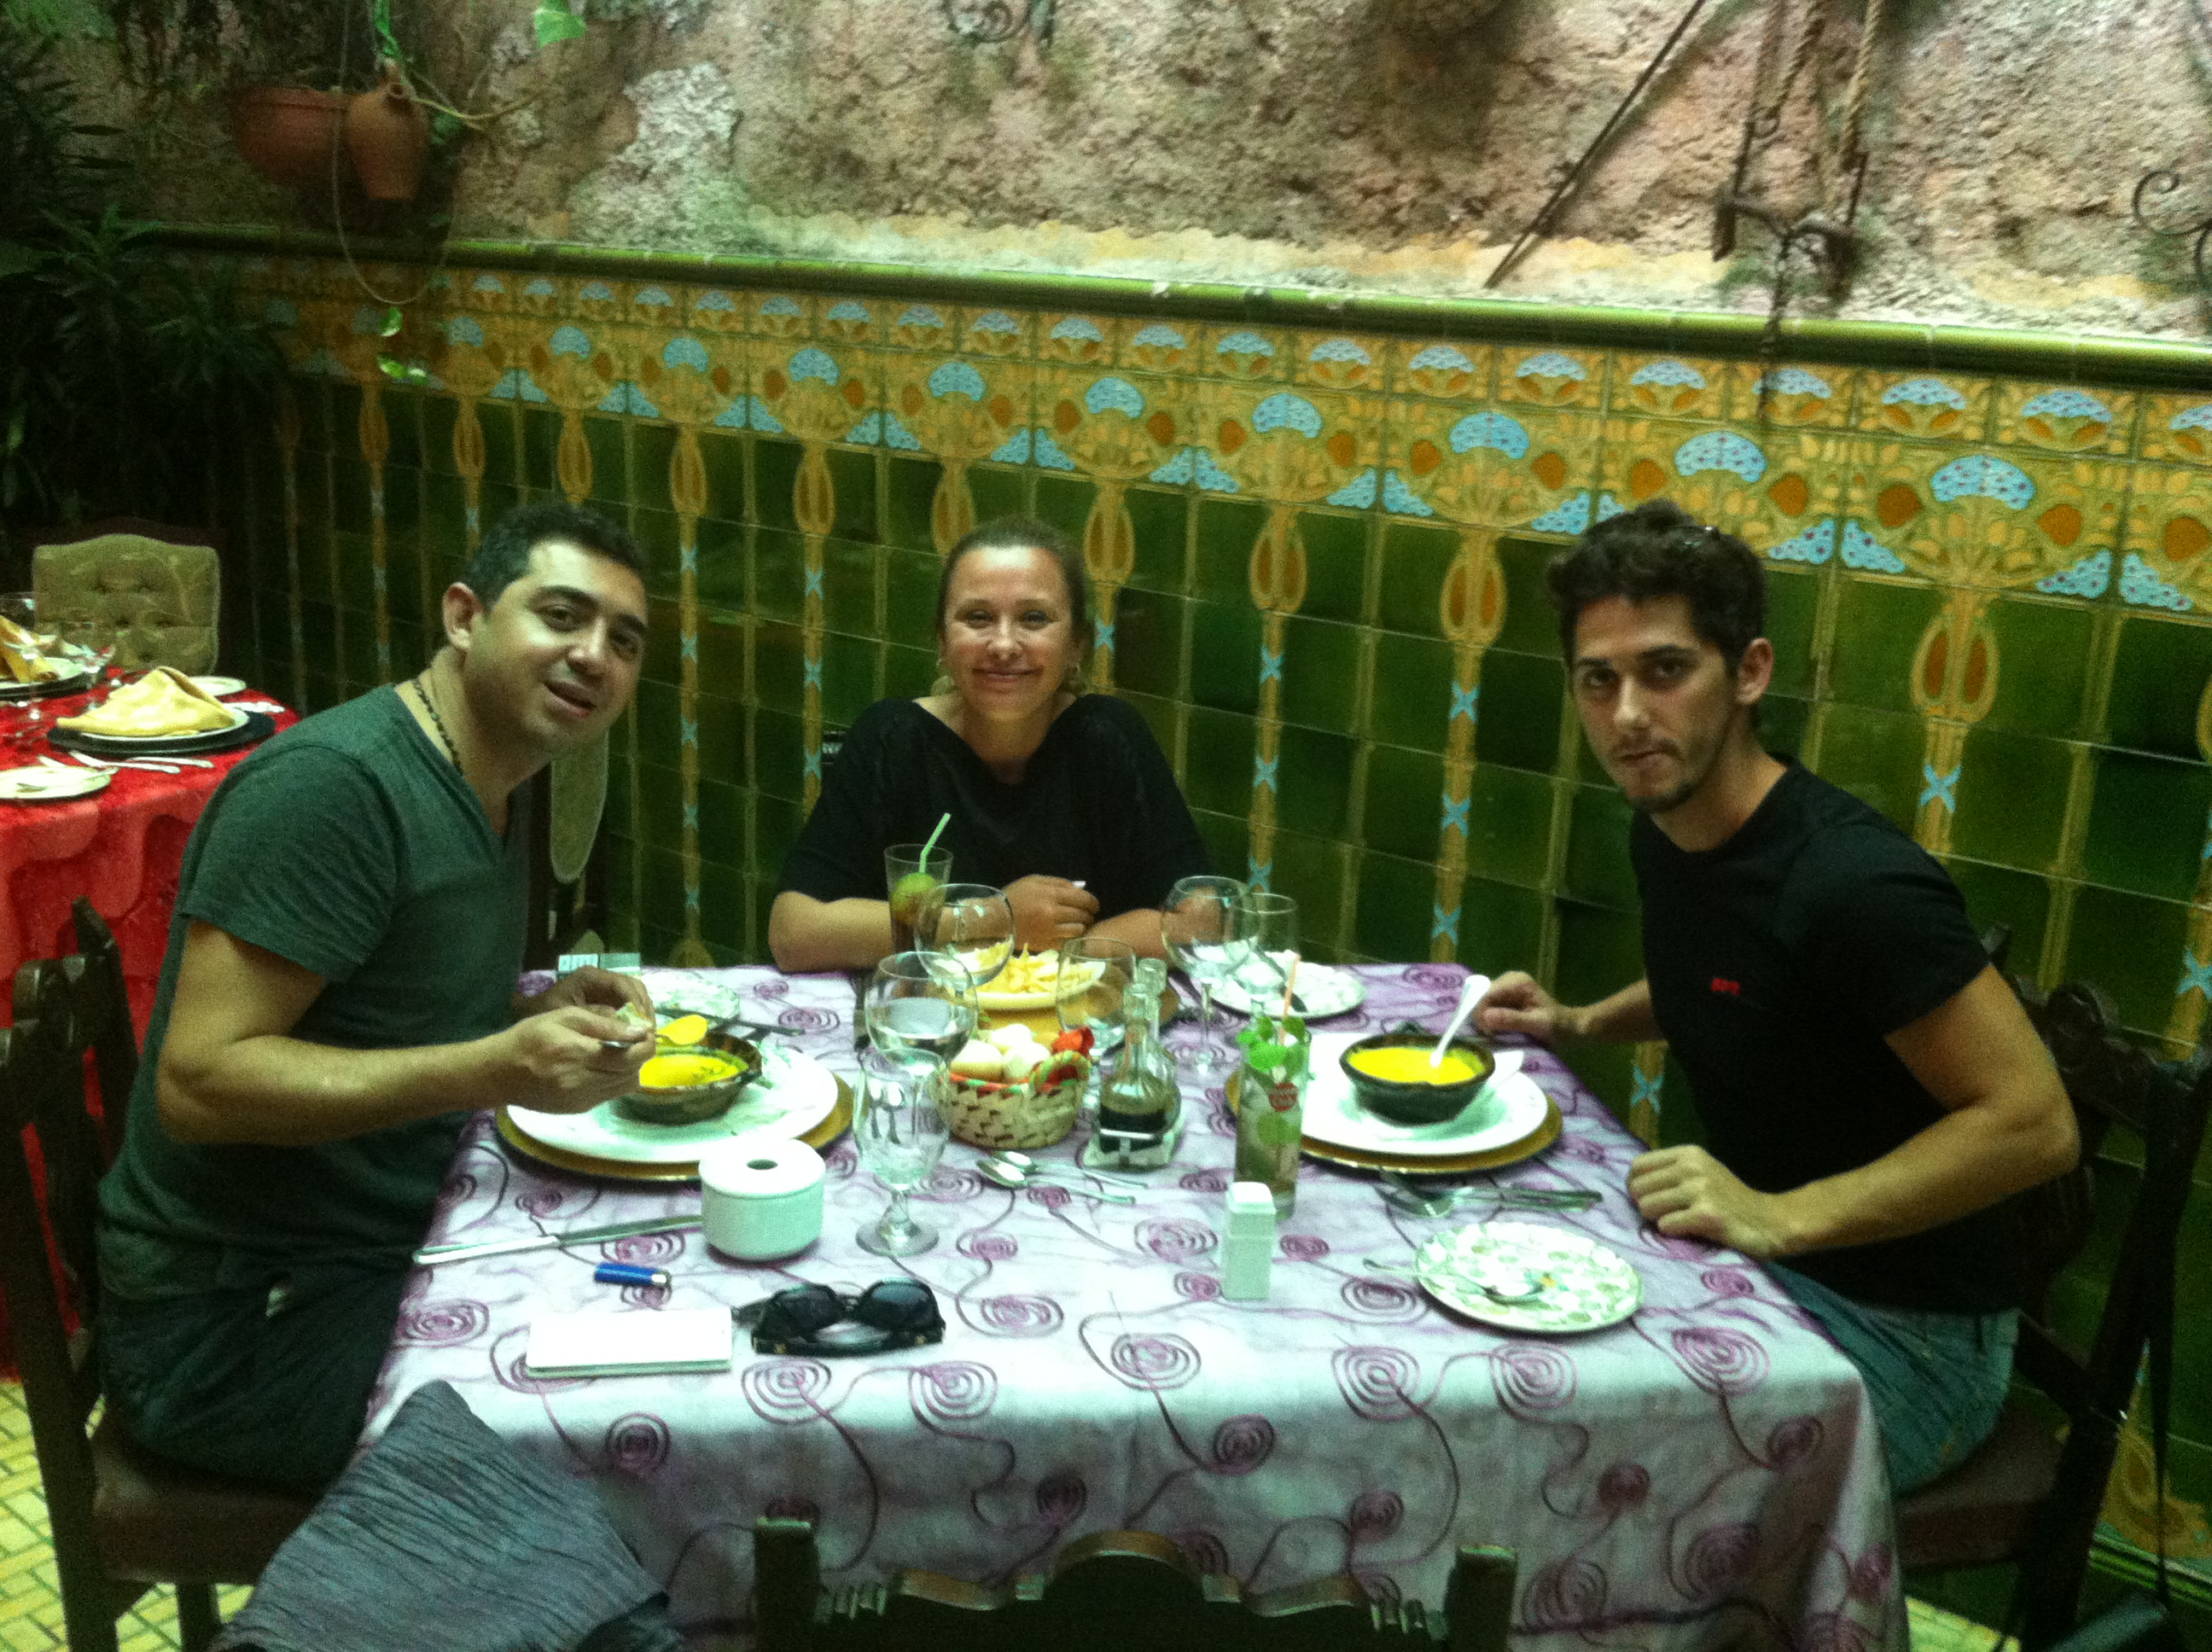 Having lunch in San Cristobal Paladar while running a Havana day tour